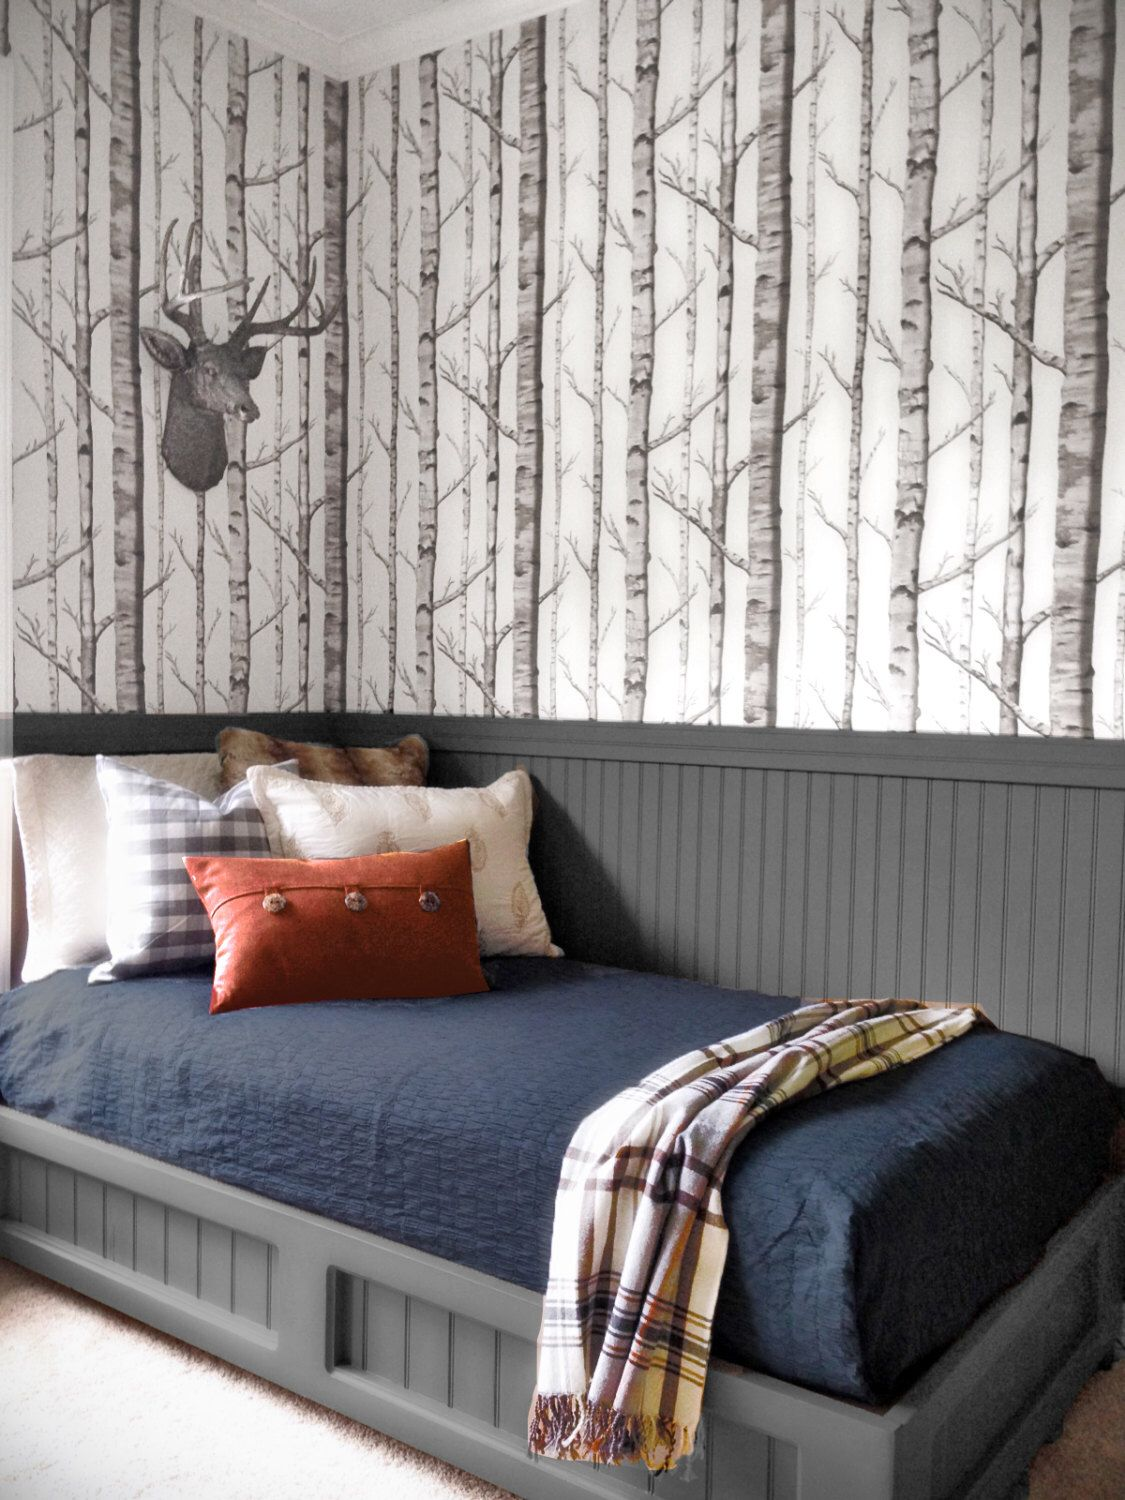 Birch Forest Removable Peel N Stick Wallpaper